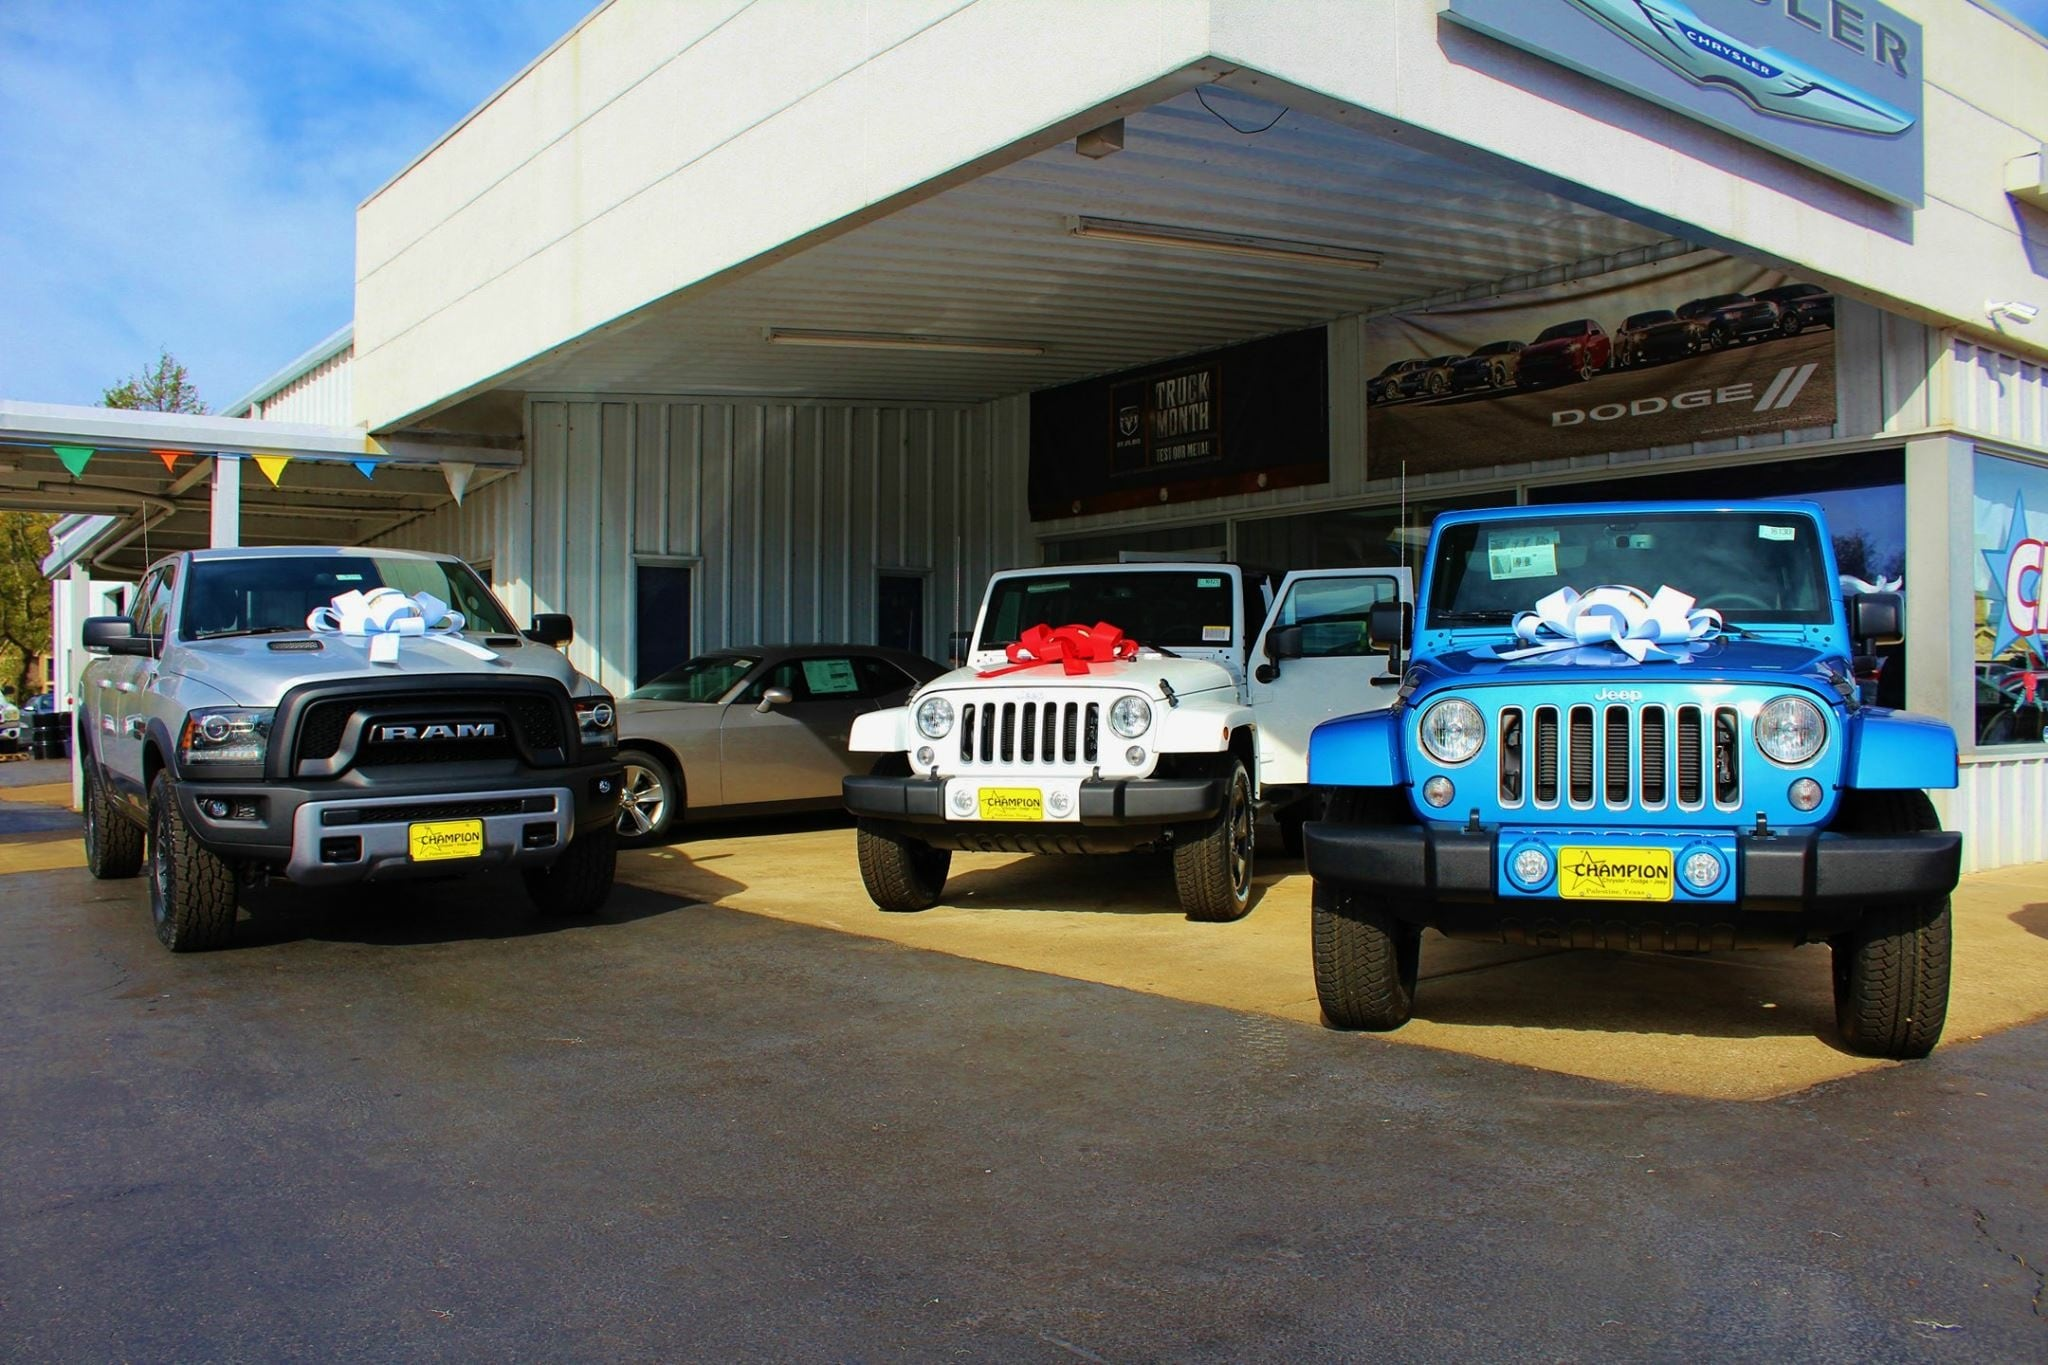 champion chrysler dodge jeep ram fiat new dodge jeep fiat. Cars Review. Best American Auto & Cars Review